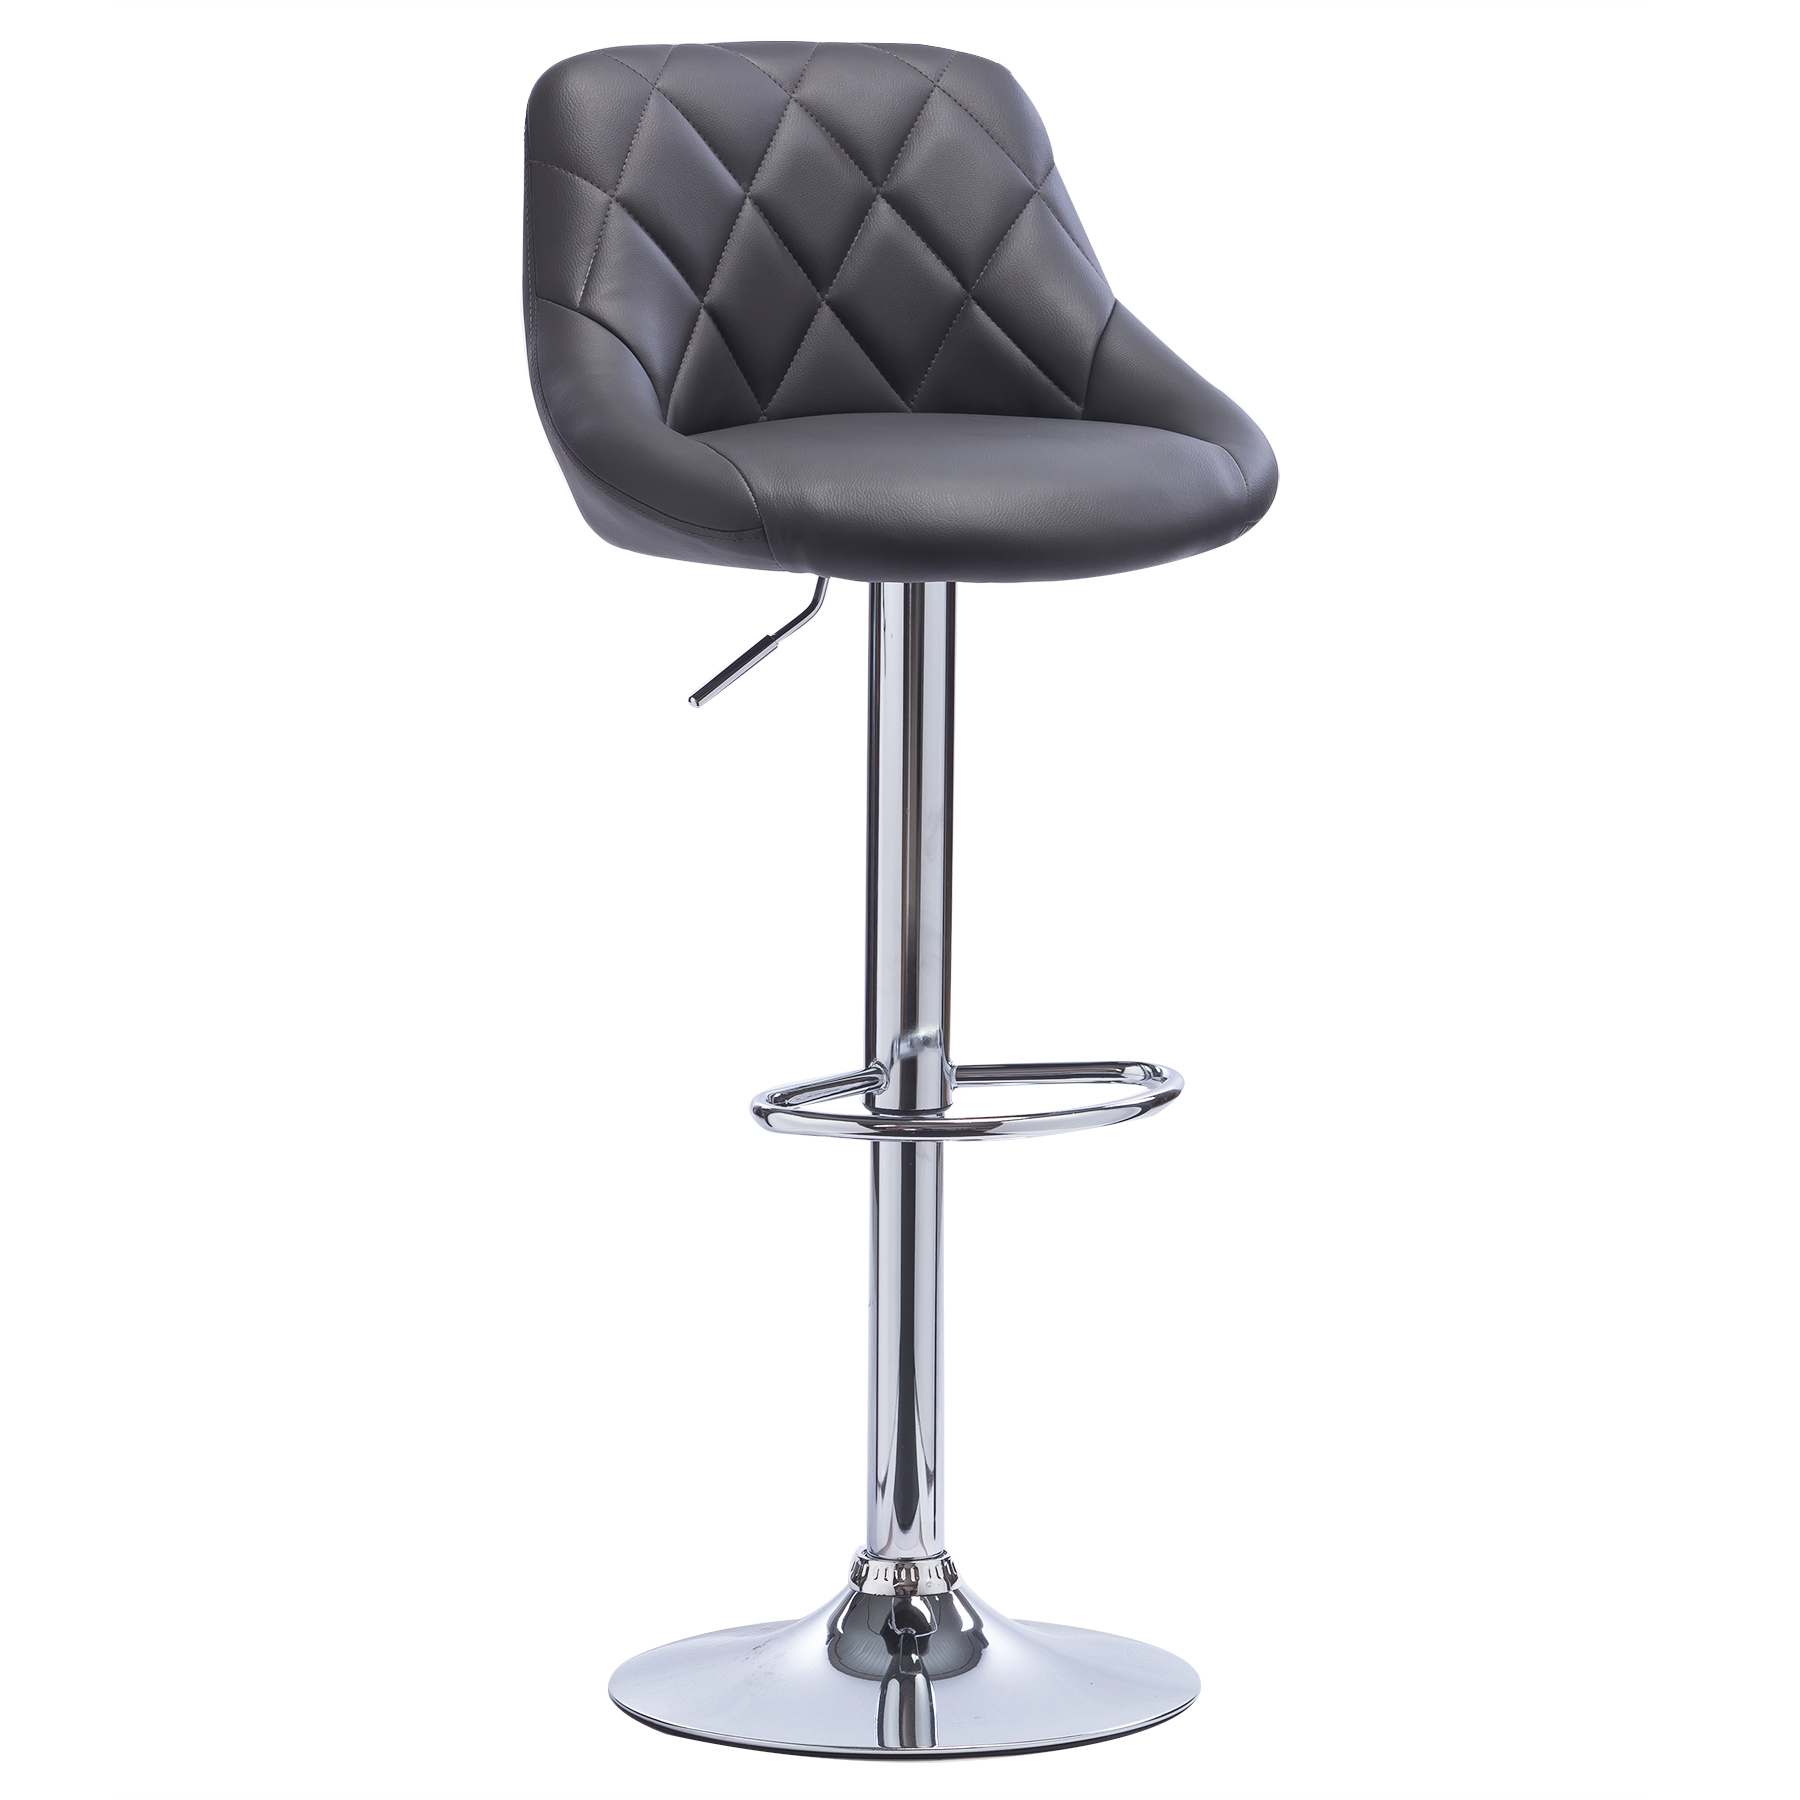 1 tabouret de bar pivotant en cuir synth tique chaise for Chaise de bar en cuir